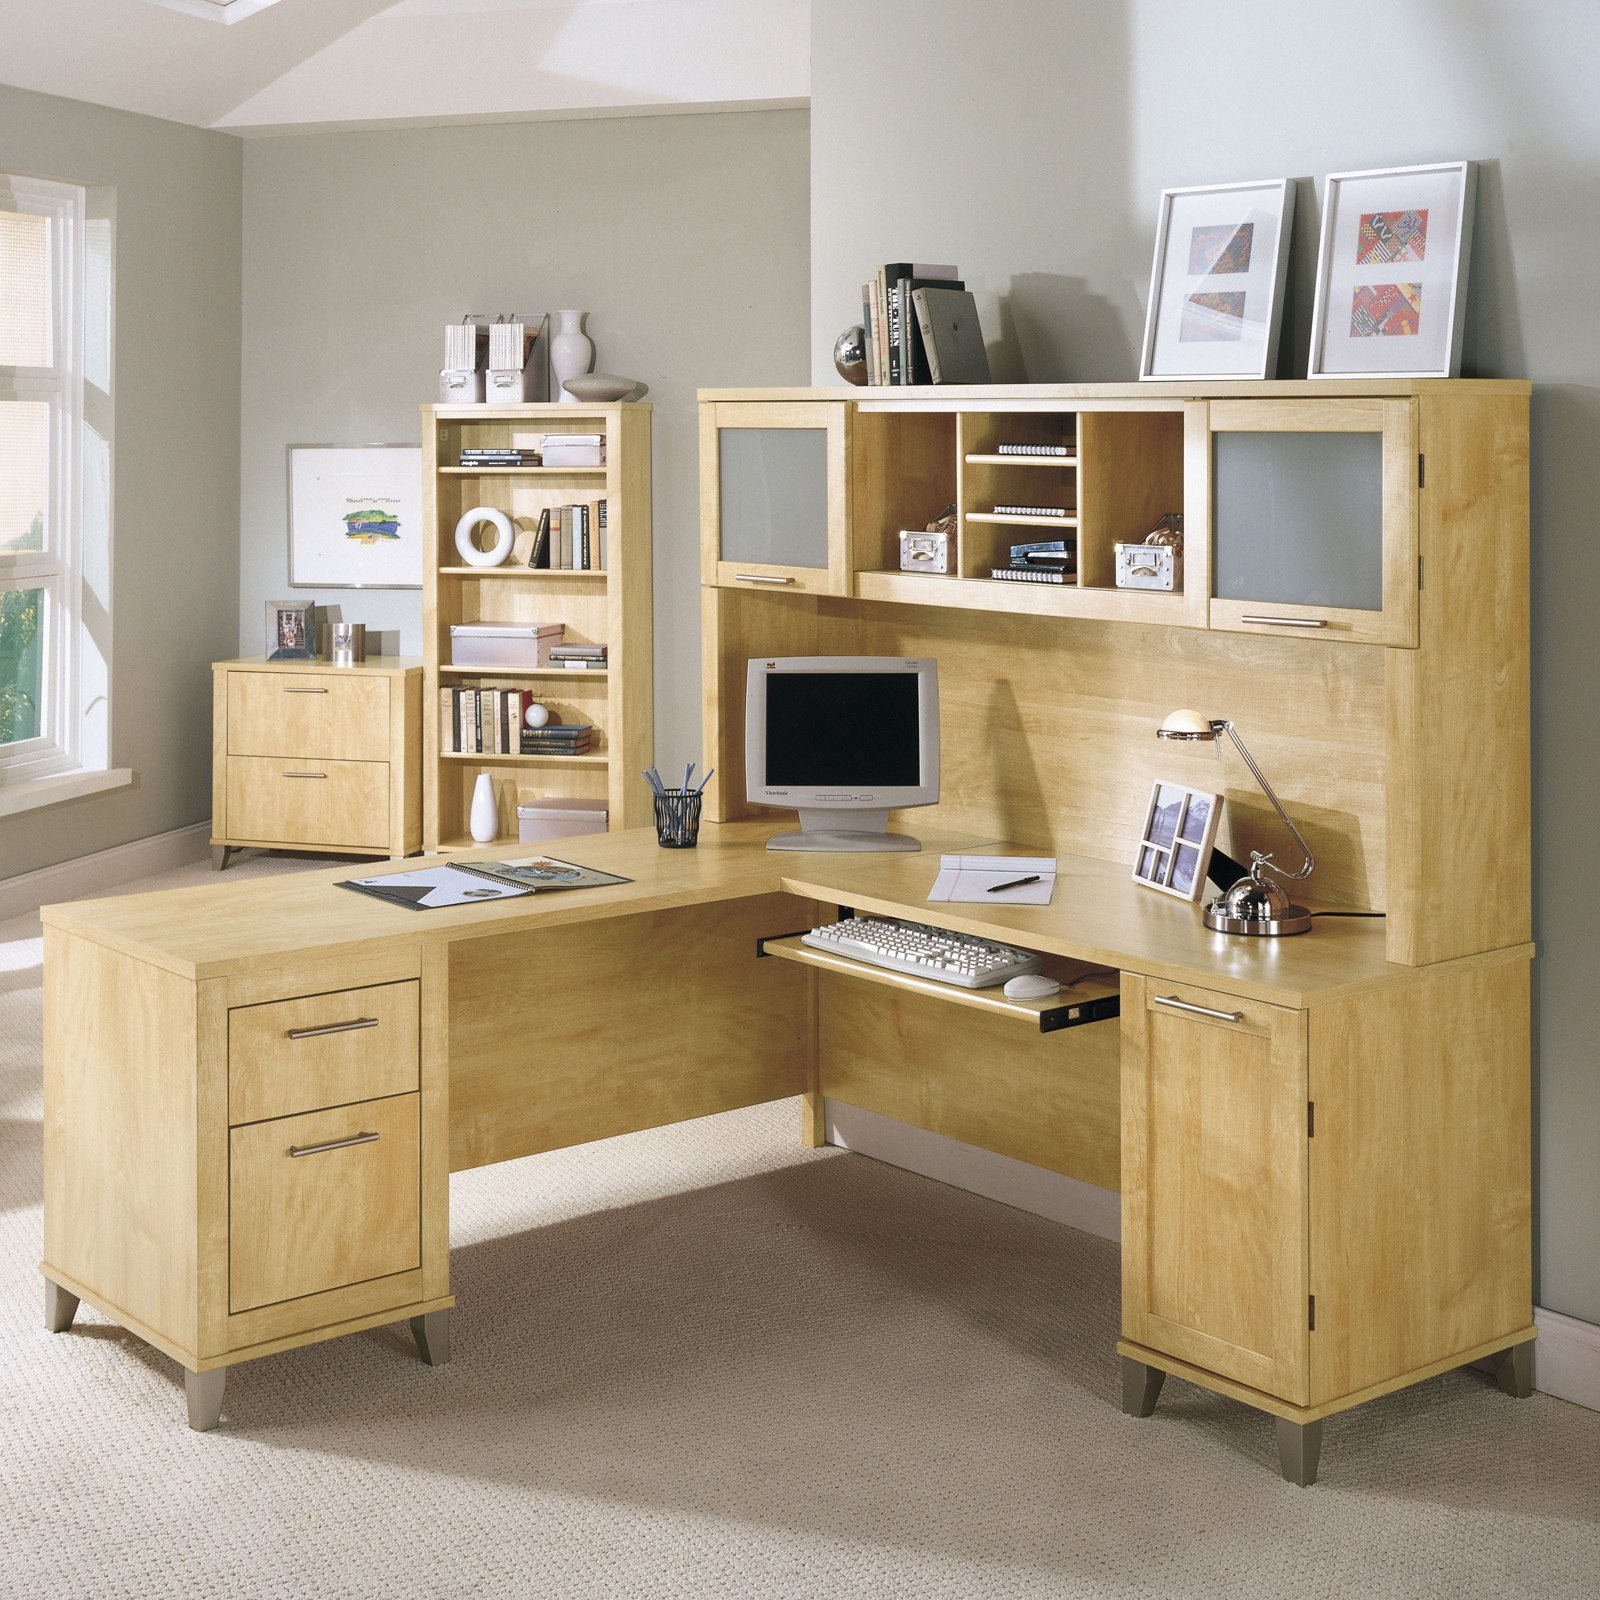 return l left doctorapp the design office furniture shaped hutch co and way image of desk with